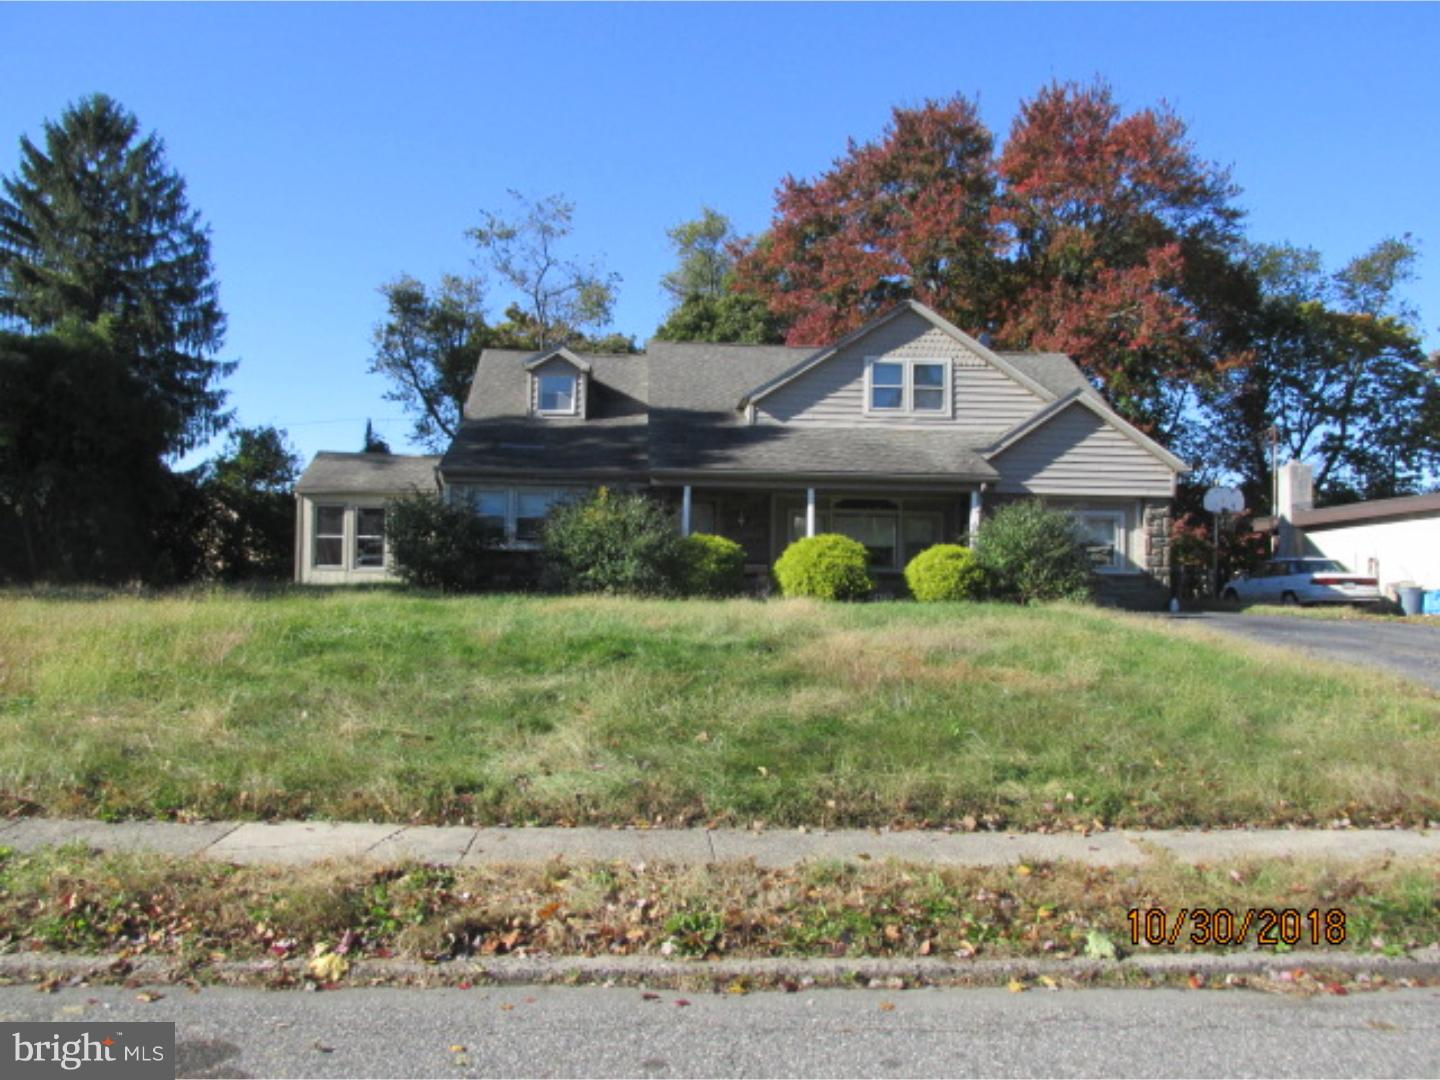 2158 MARY LANE, BROOMALL, PA 19008